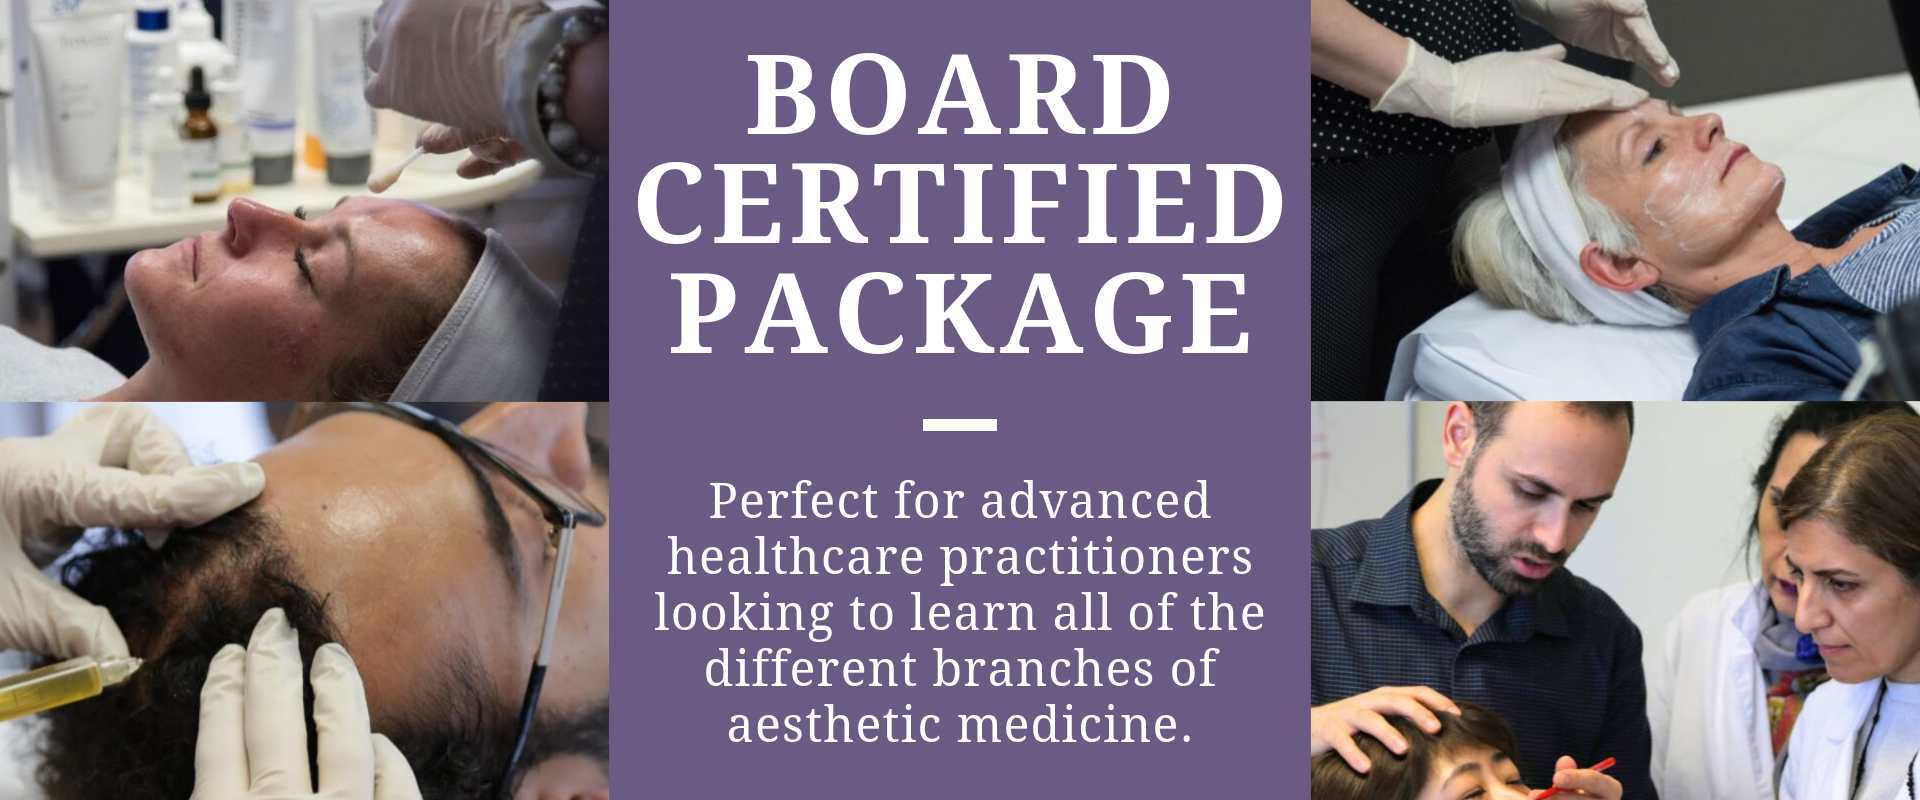 botox training, filler course, prp, and mesotherapy-Certification Courses for Physicians & Nurses-Canadian Board of Aesthetic Medicine (CBAM)